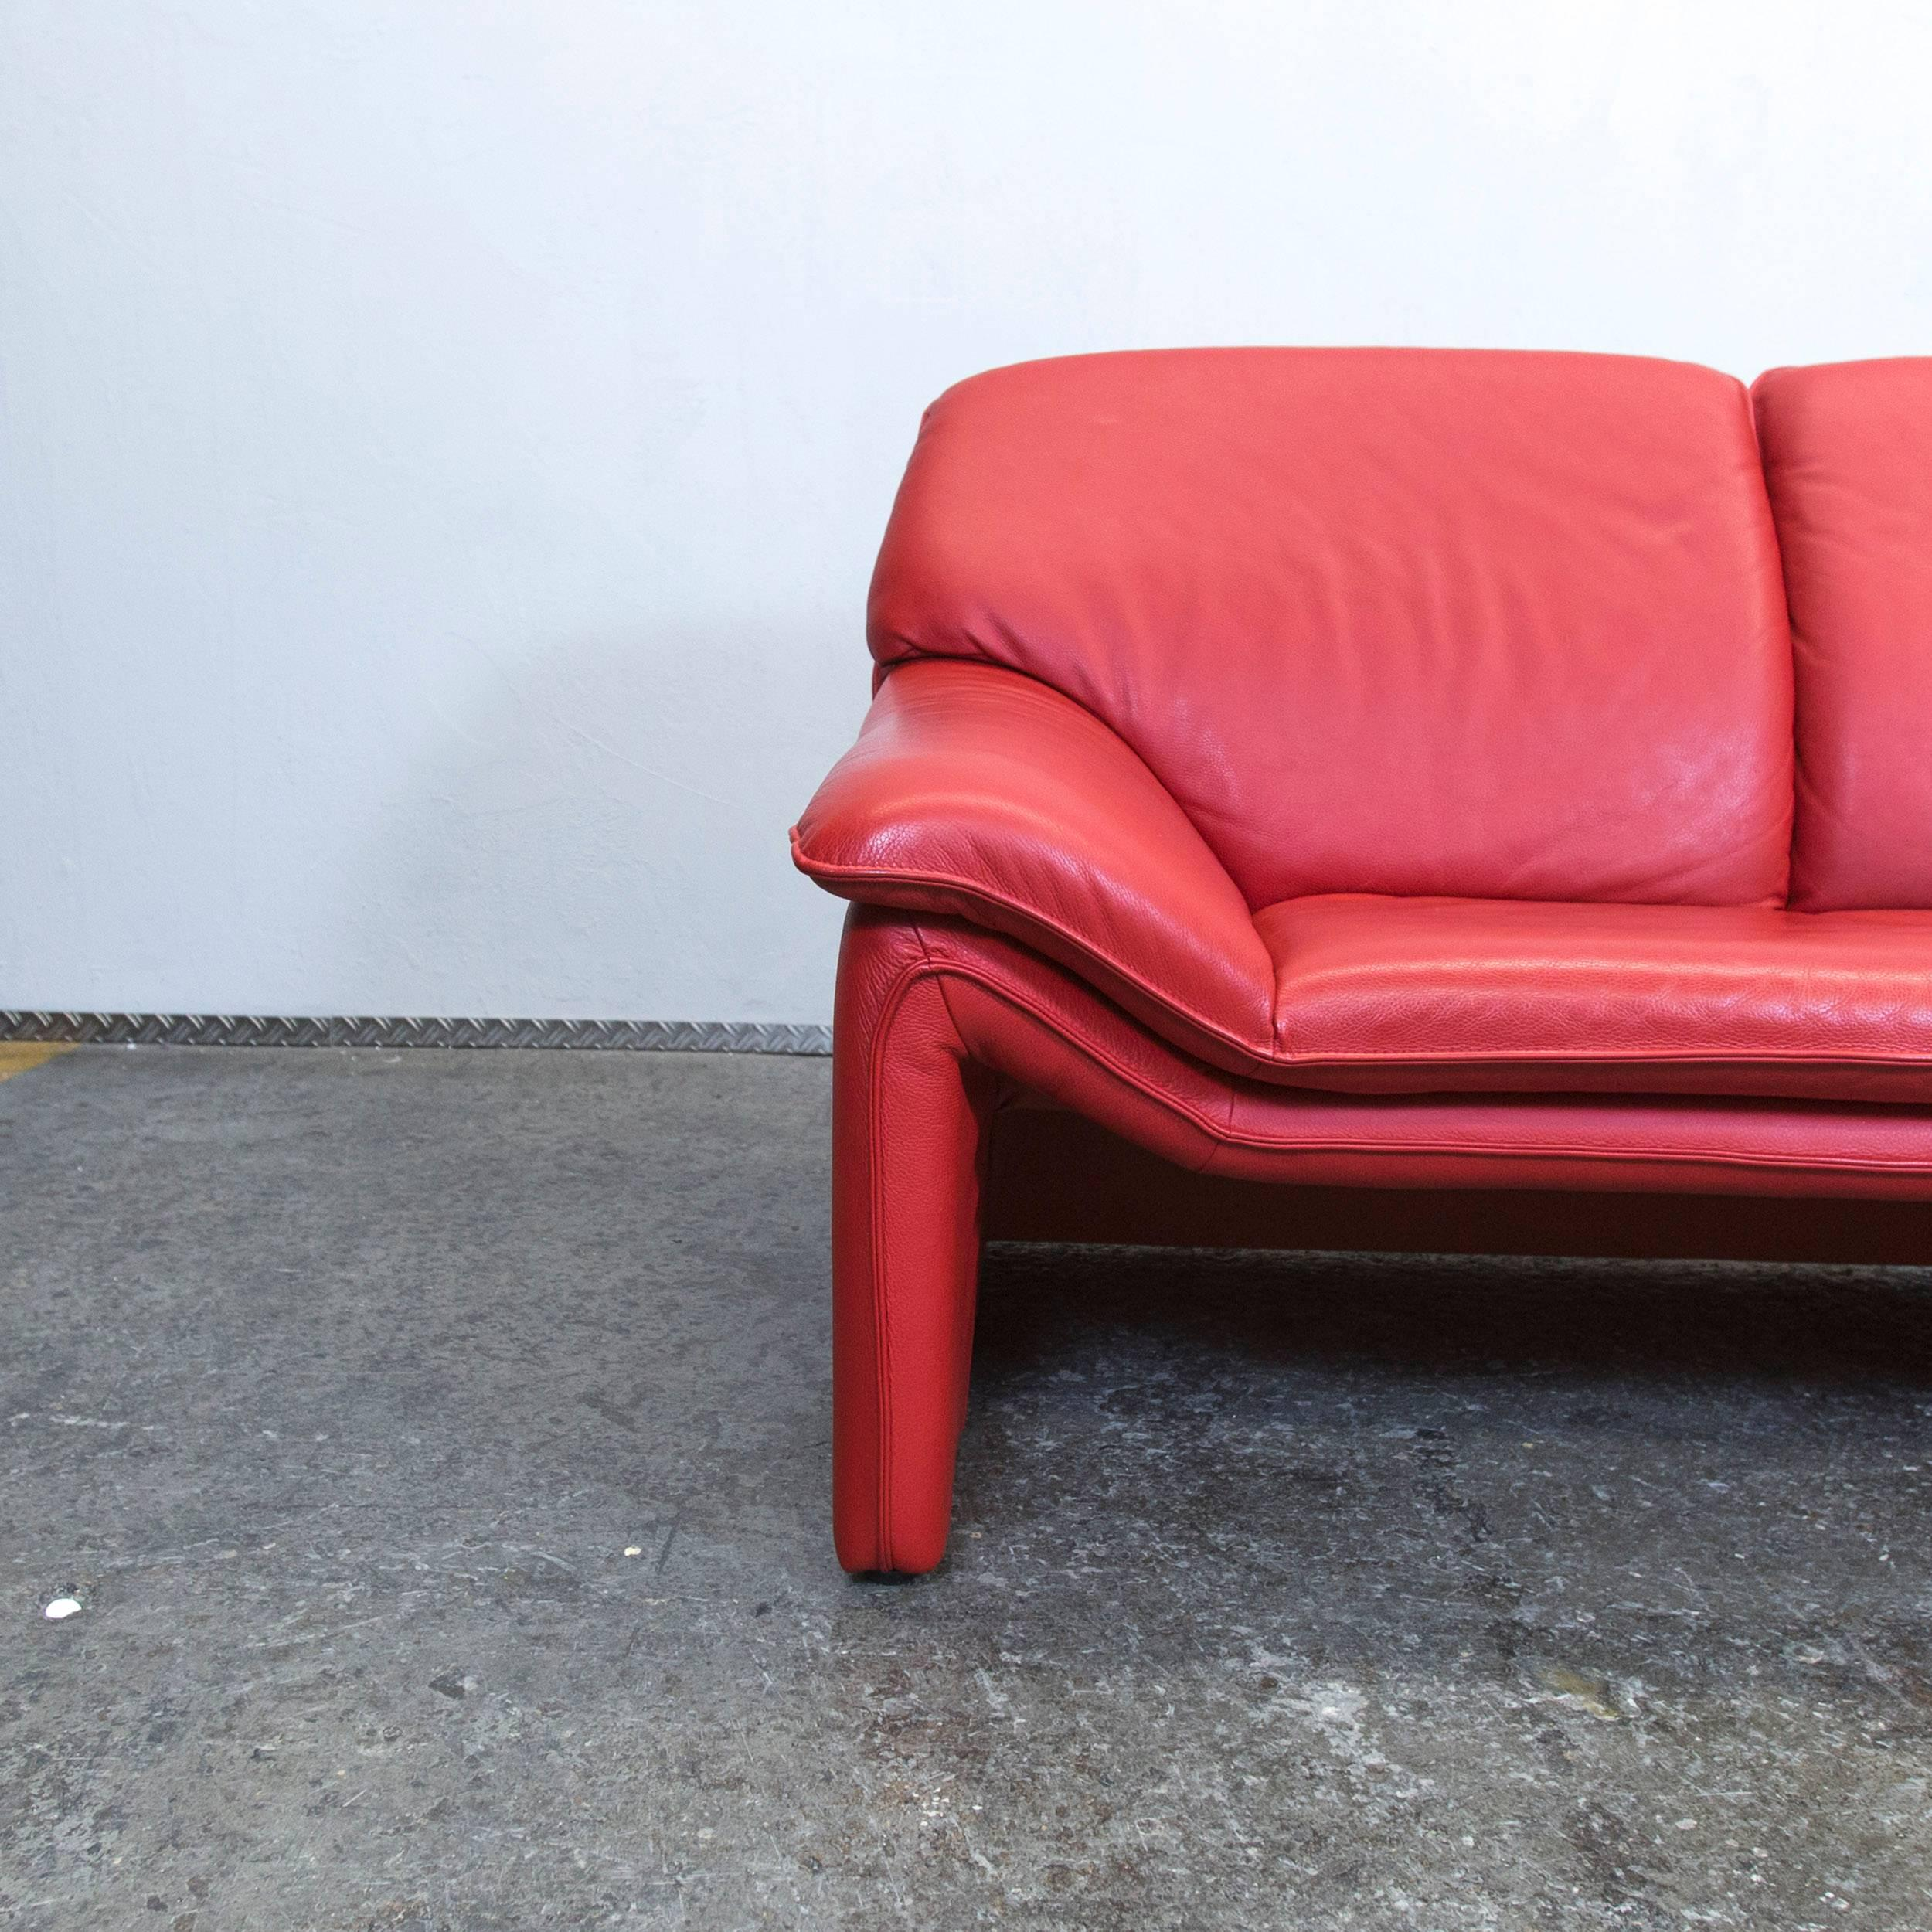 Red Colored Original Laauser Designer Leather Sofa In A Minimalistic And Modern  Design.